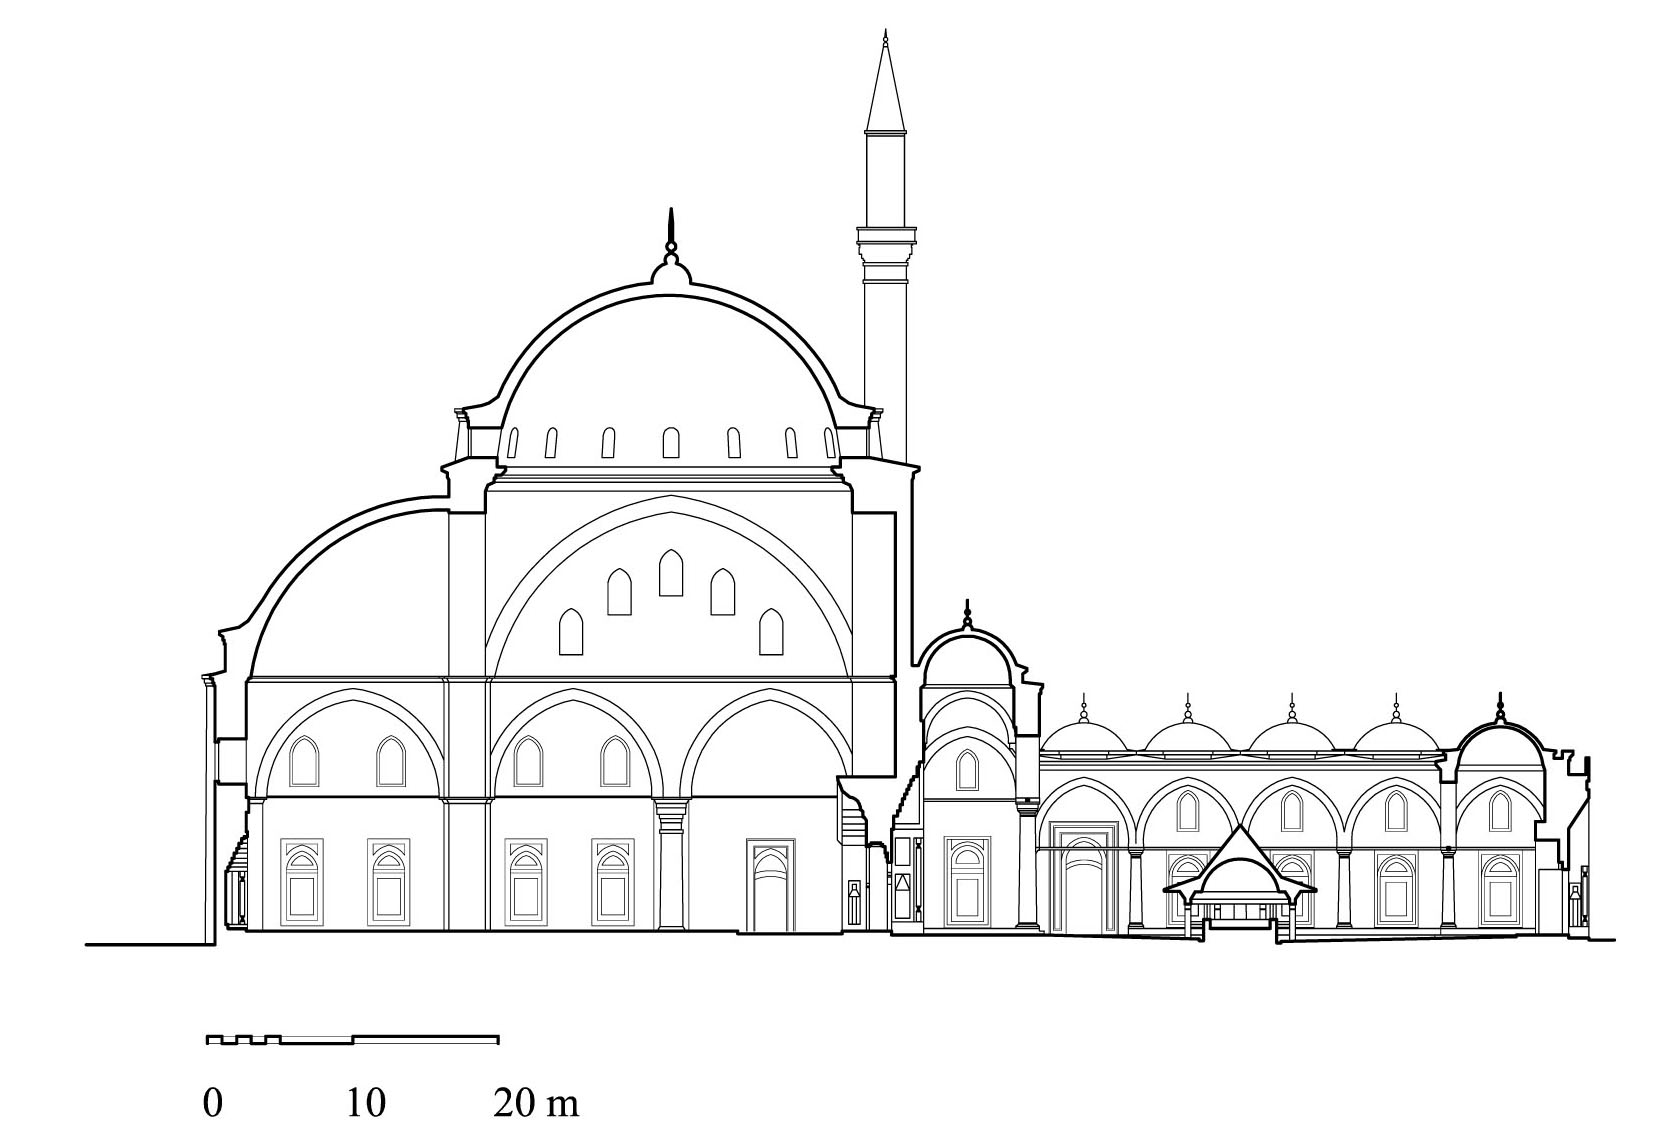 Hypothetical cross-section of the original mosque of